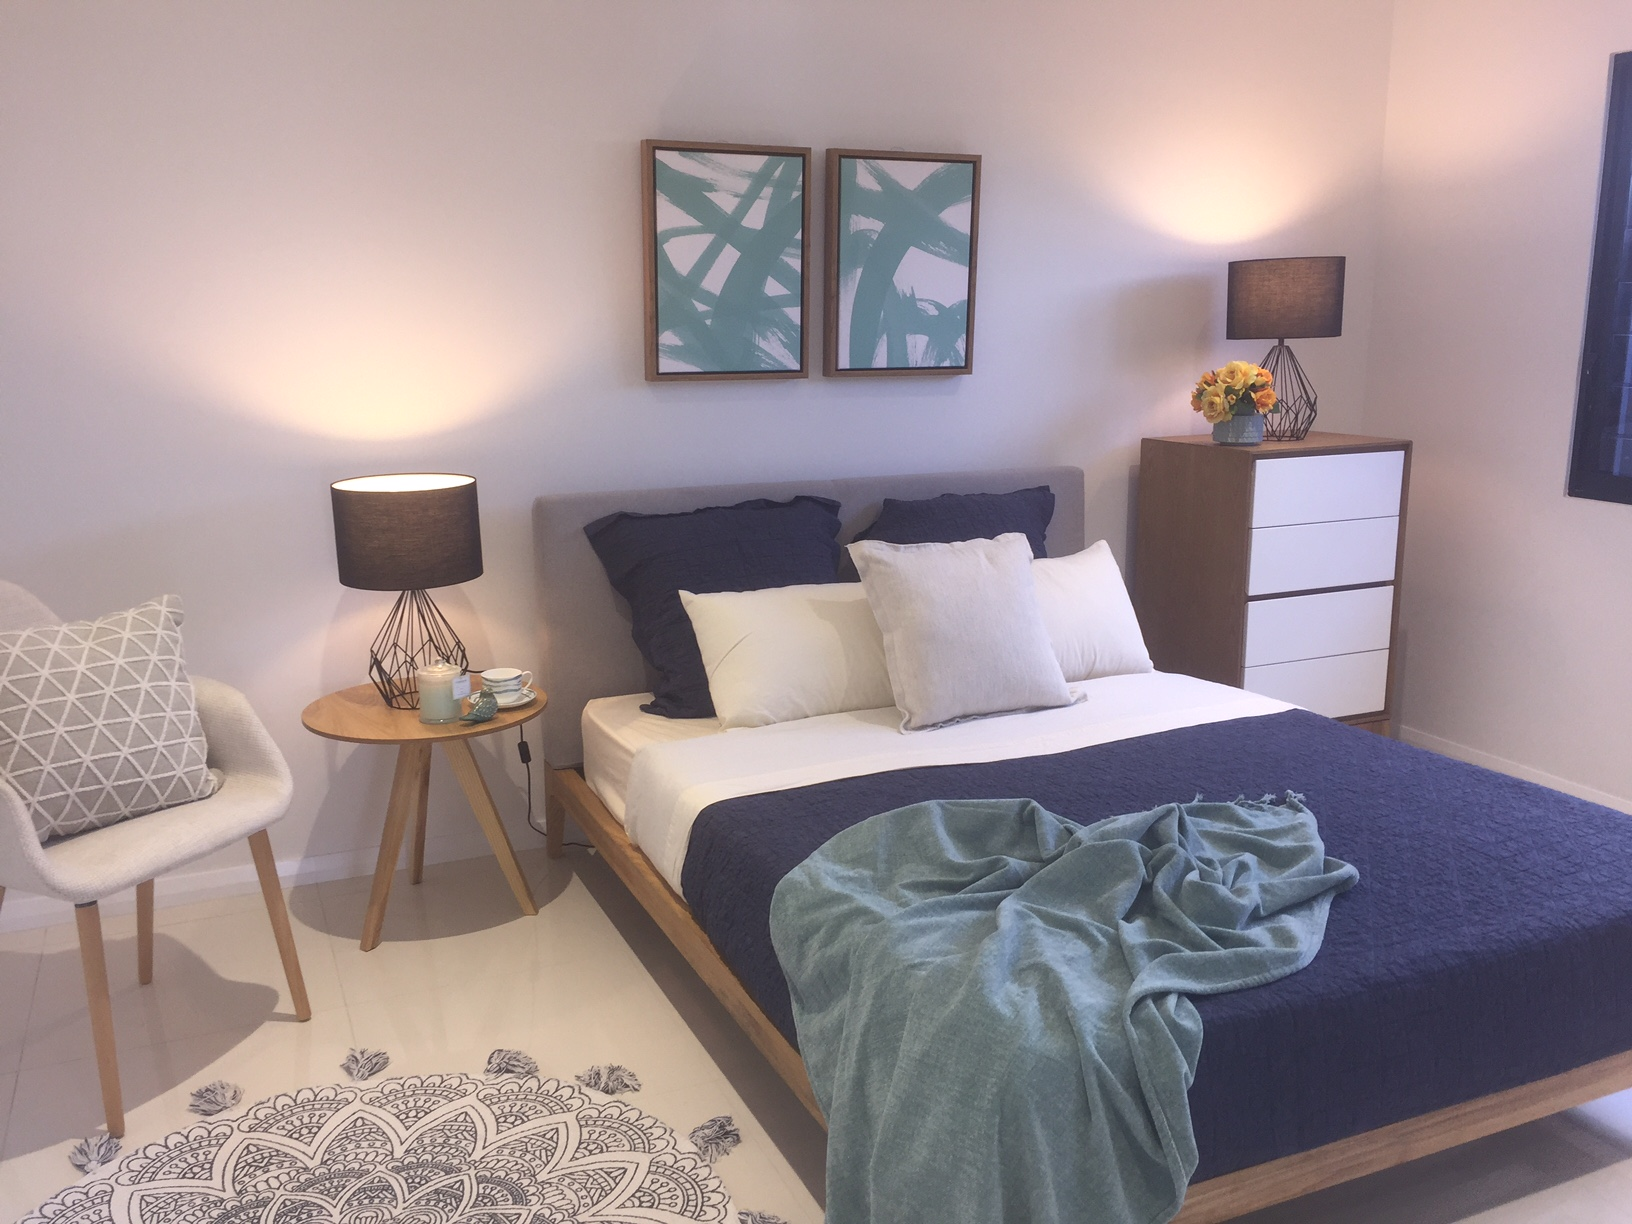 modern bedroom with lamps, blue bed and side chair